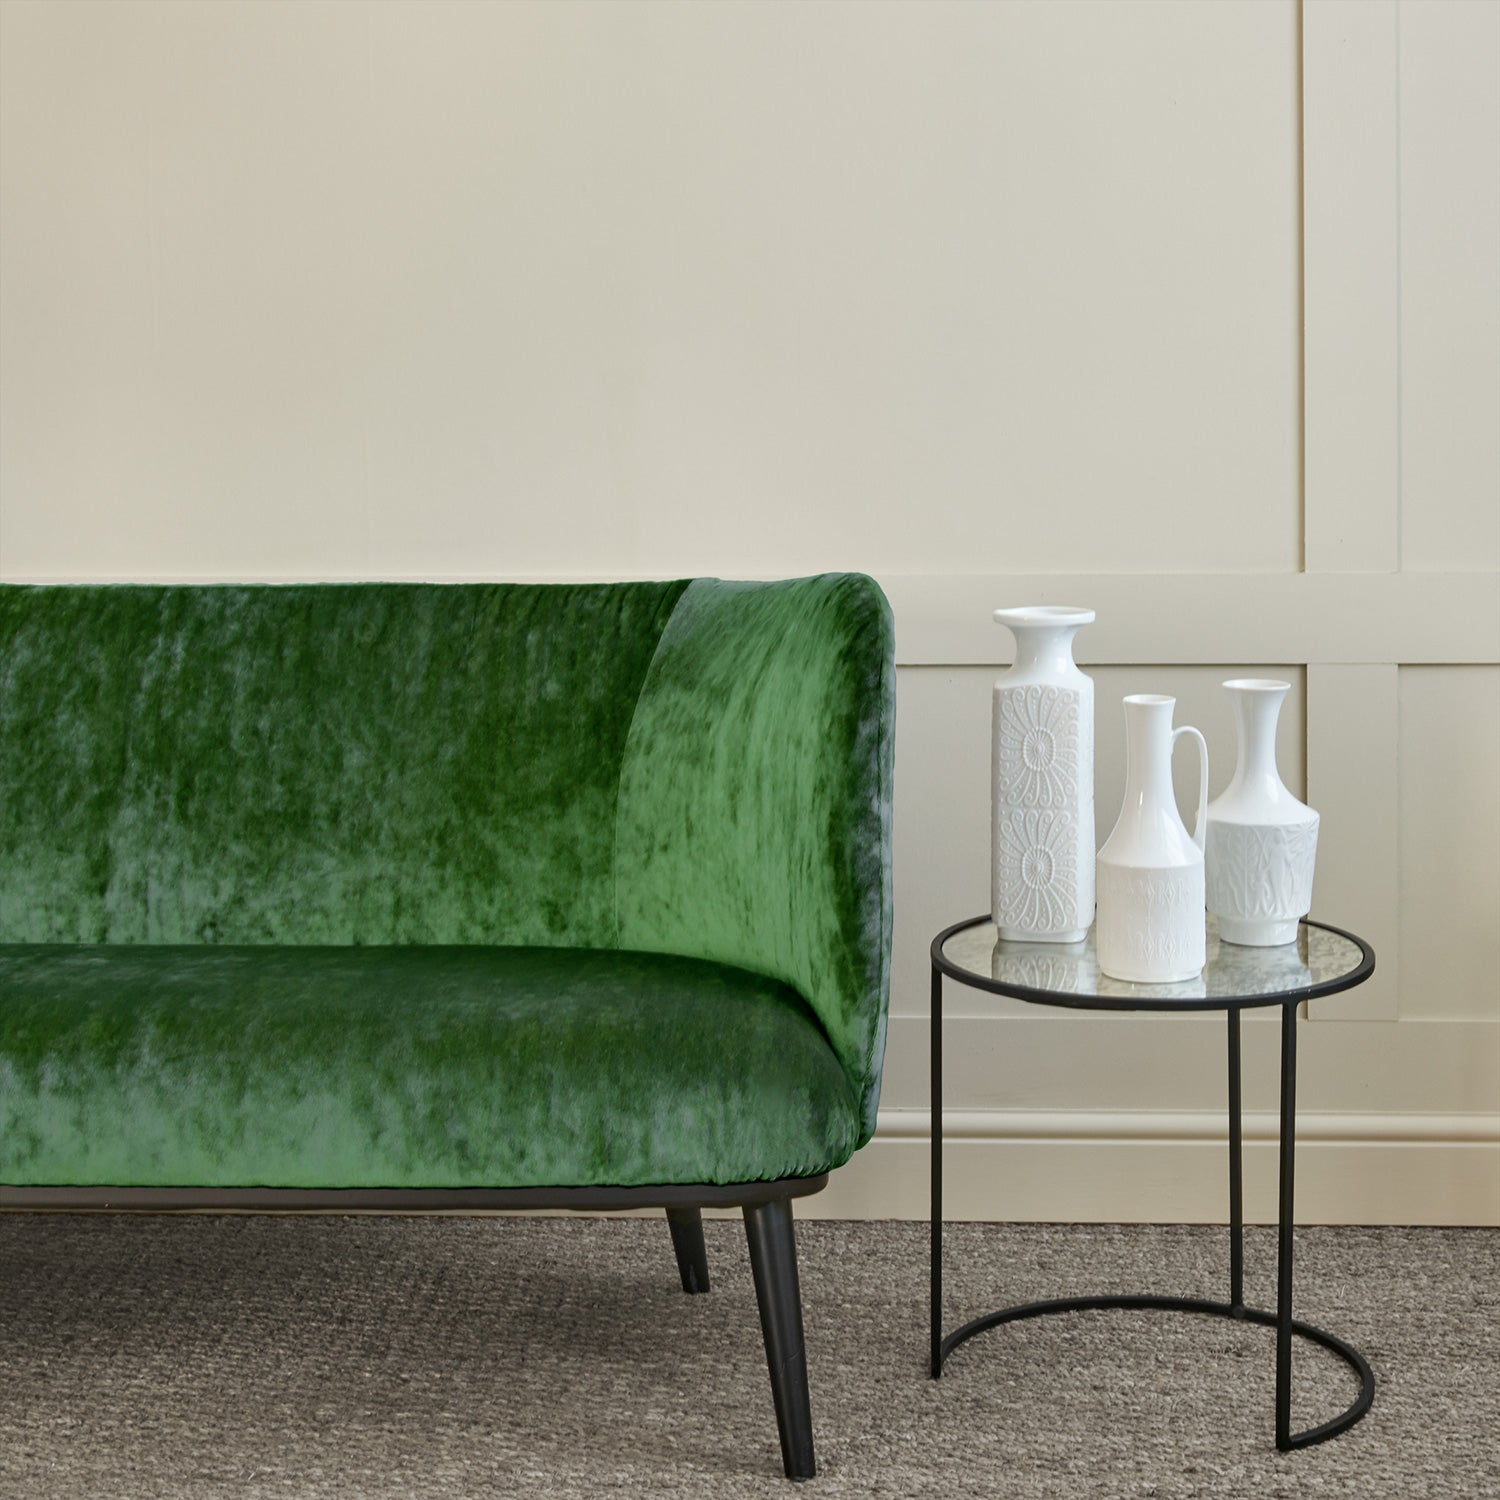 Sofa in a green stain resistant crushed velvet fabric, perfect for green crushed velvet sofa or curtains